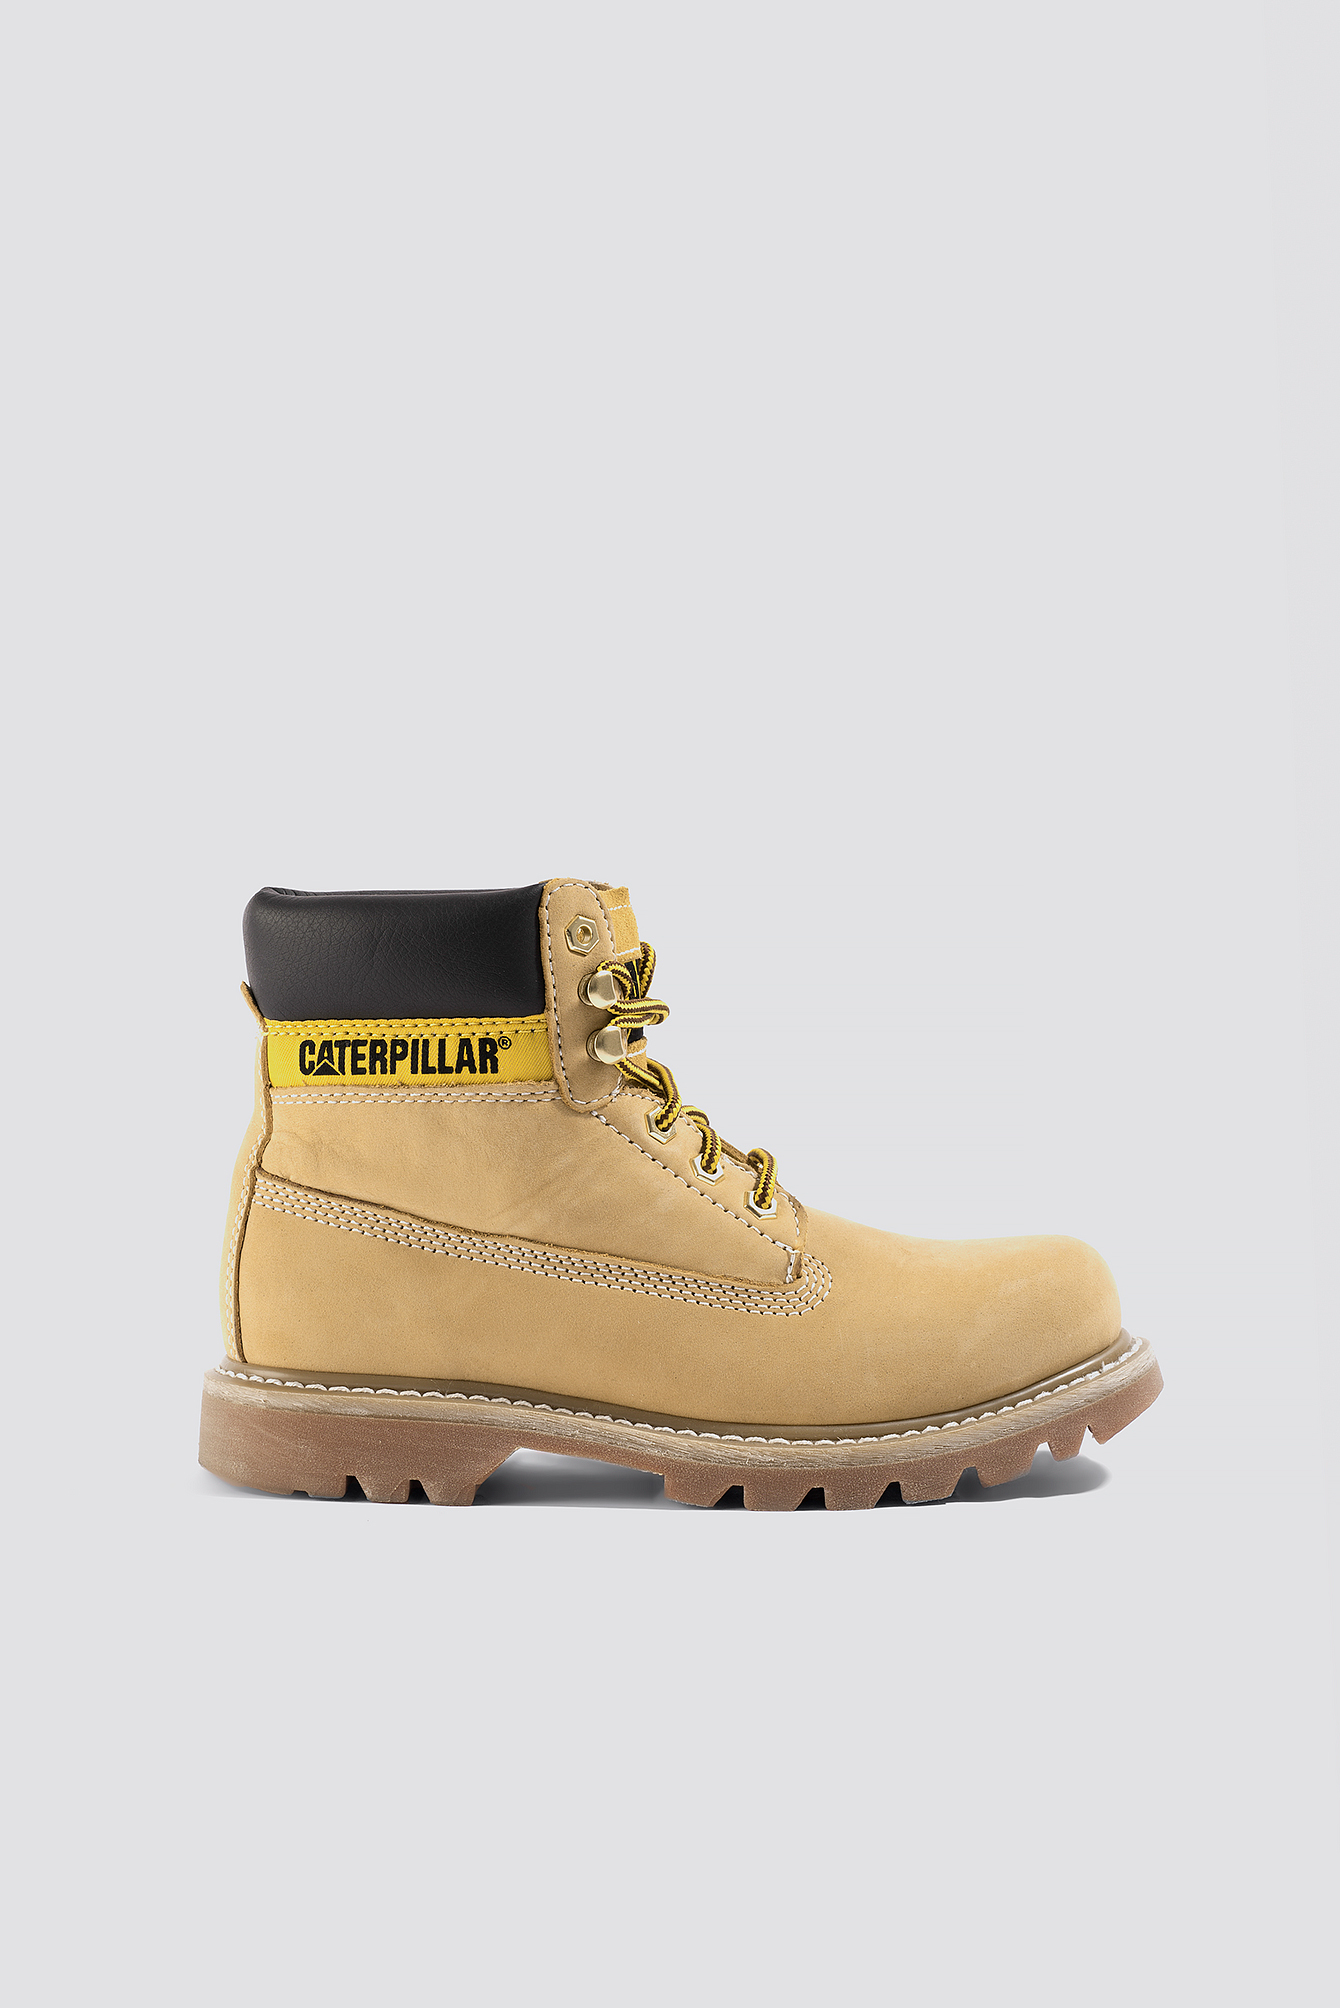 The boots by Caterpillar feature a fit, a reliable sole, a closure, details, a resistant material and a protection.